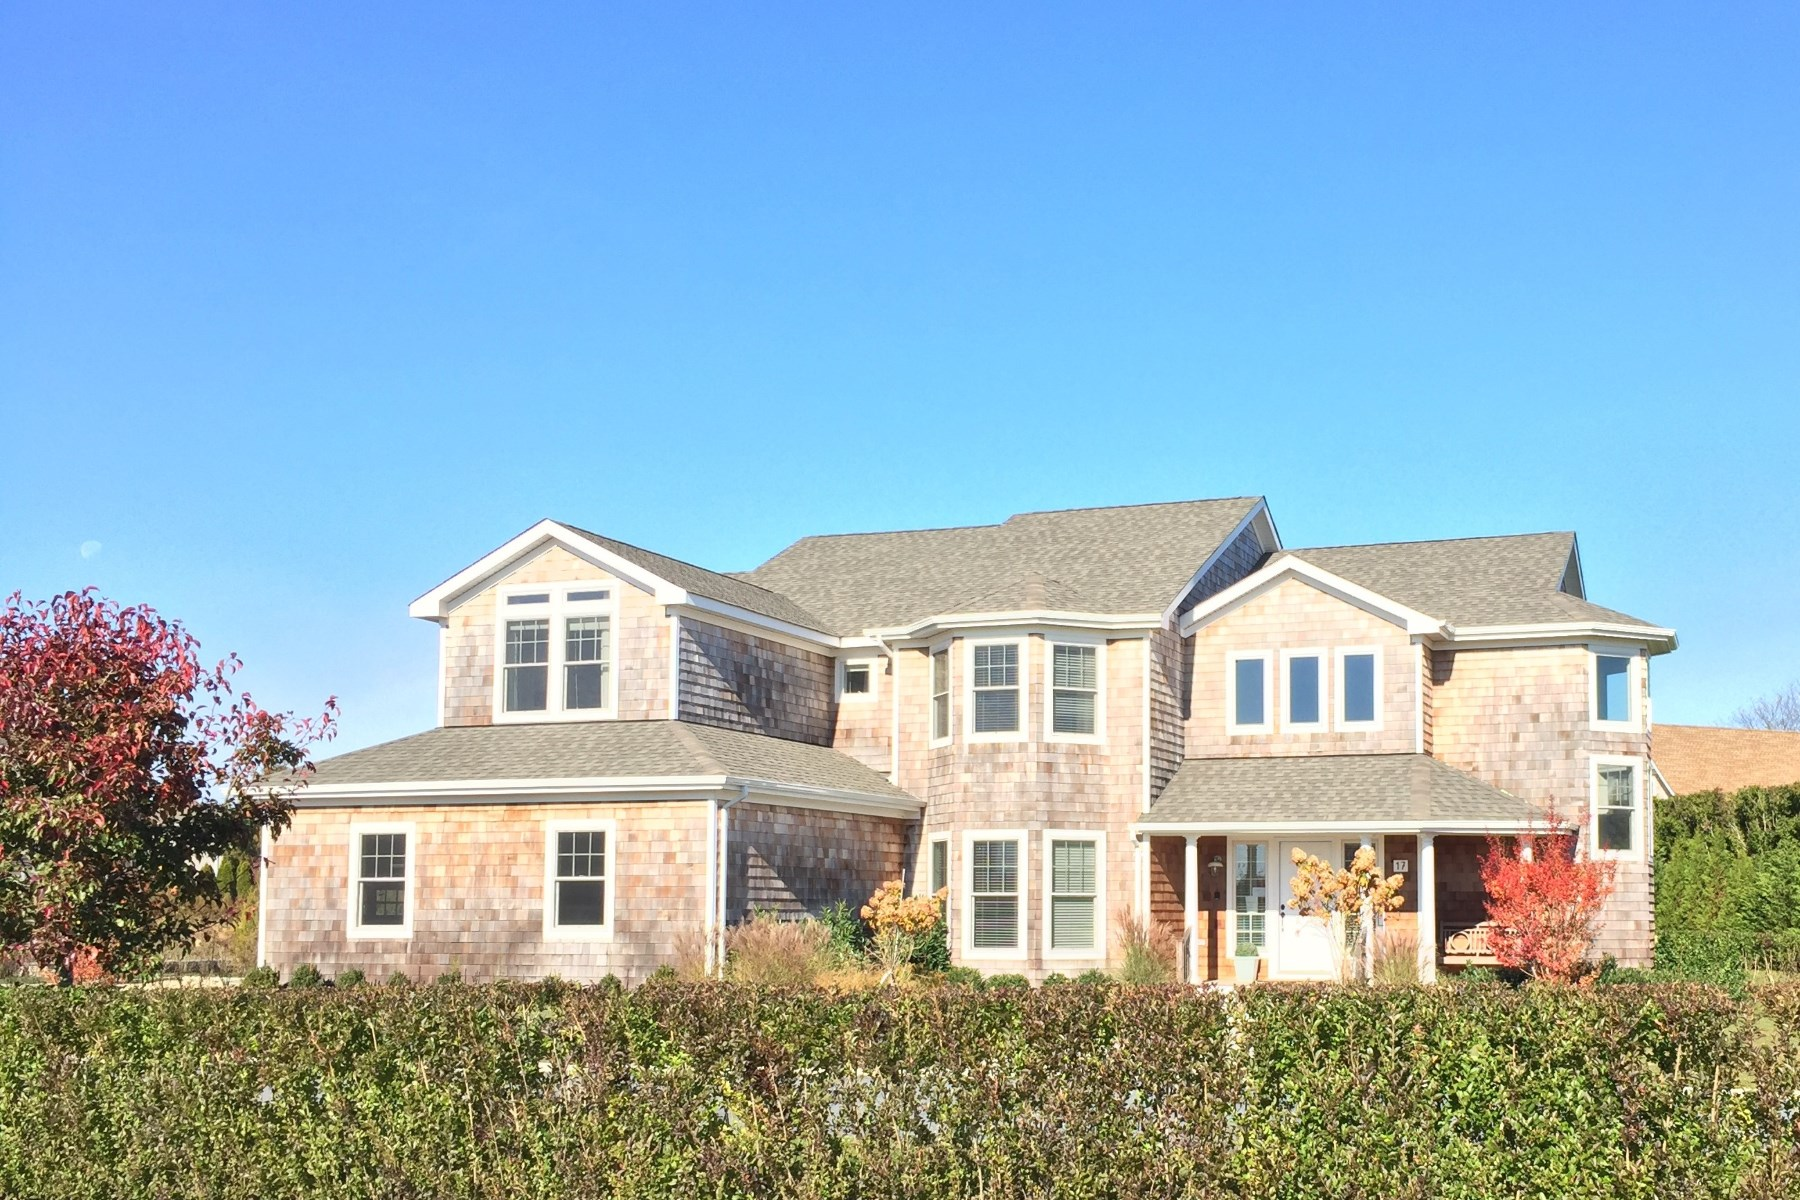 Villa per Vendita alle ore Southampton Meadows - I Model 3 Fall Court, Lot #20 Southampton, New York 11968 Stati Uniti